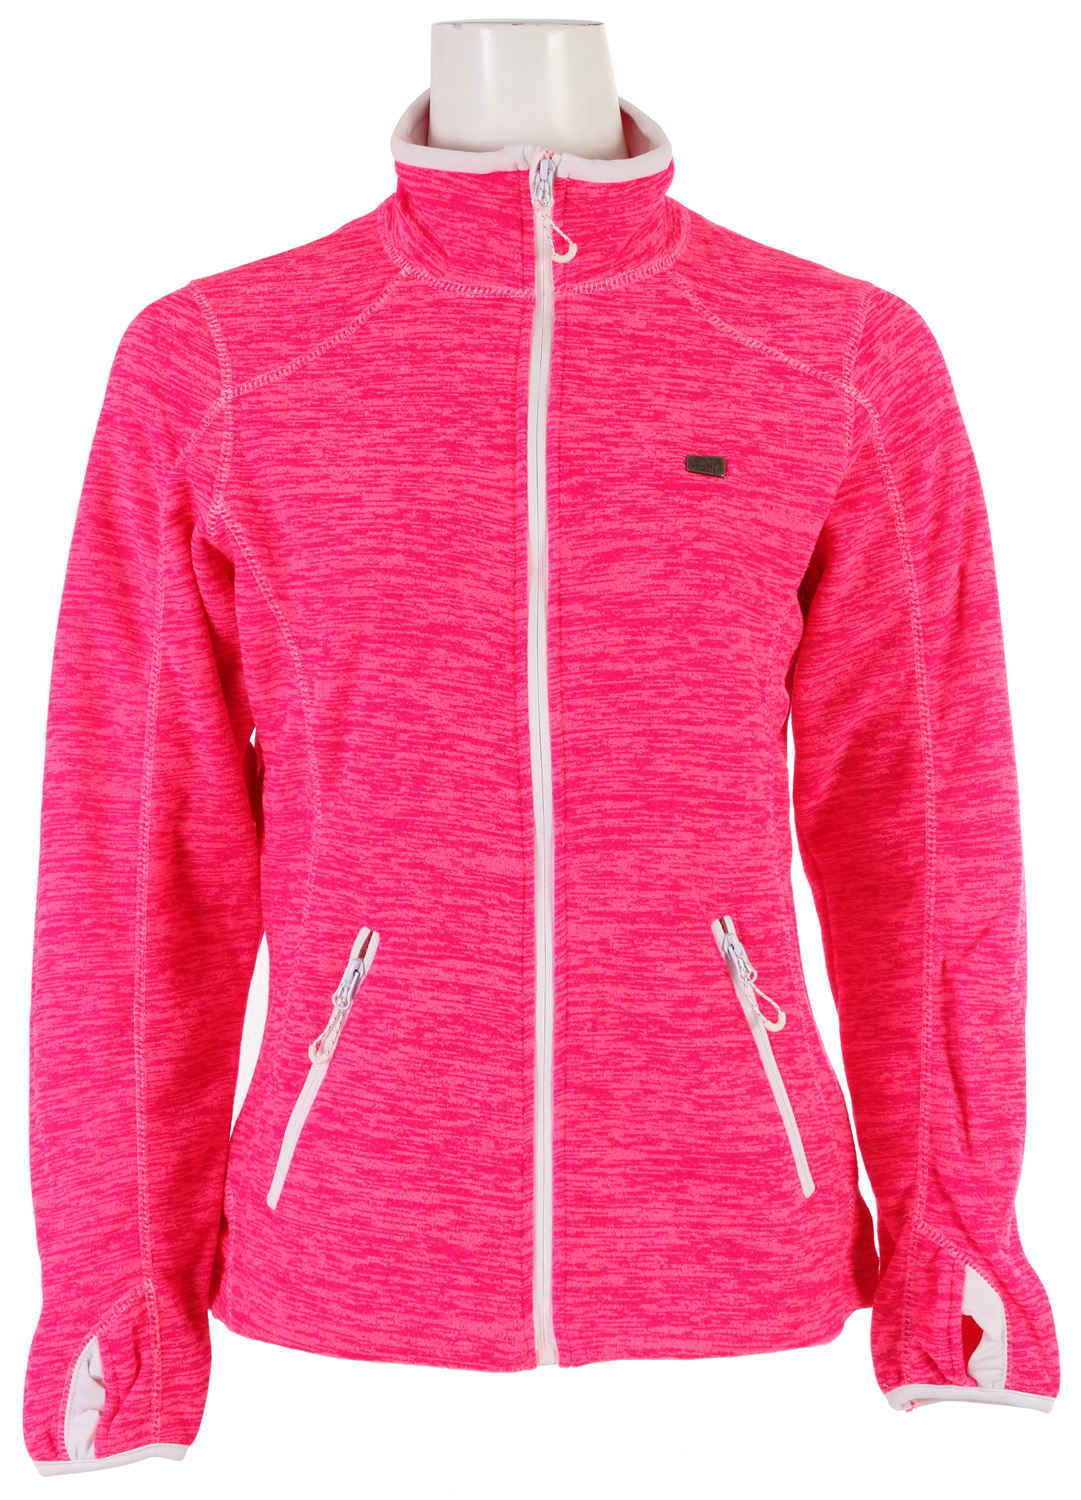 alfta women On sale 2117 of sweden alfta fleece - womens up to 50% off free shipping over $50 for an active day outdoors, the 2117 of sweden women's alfta melange fleece is a soft, lightweight, full-zip.